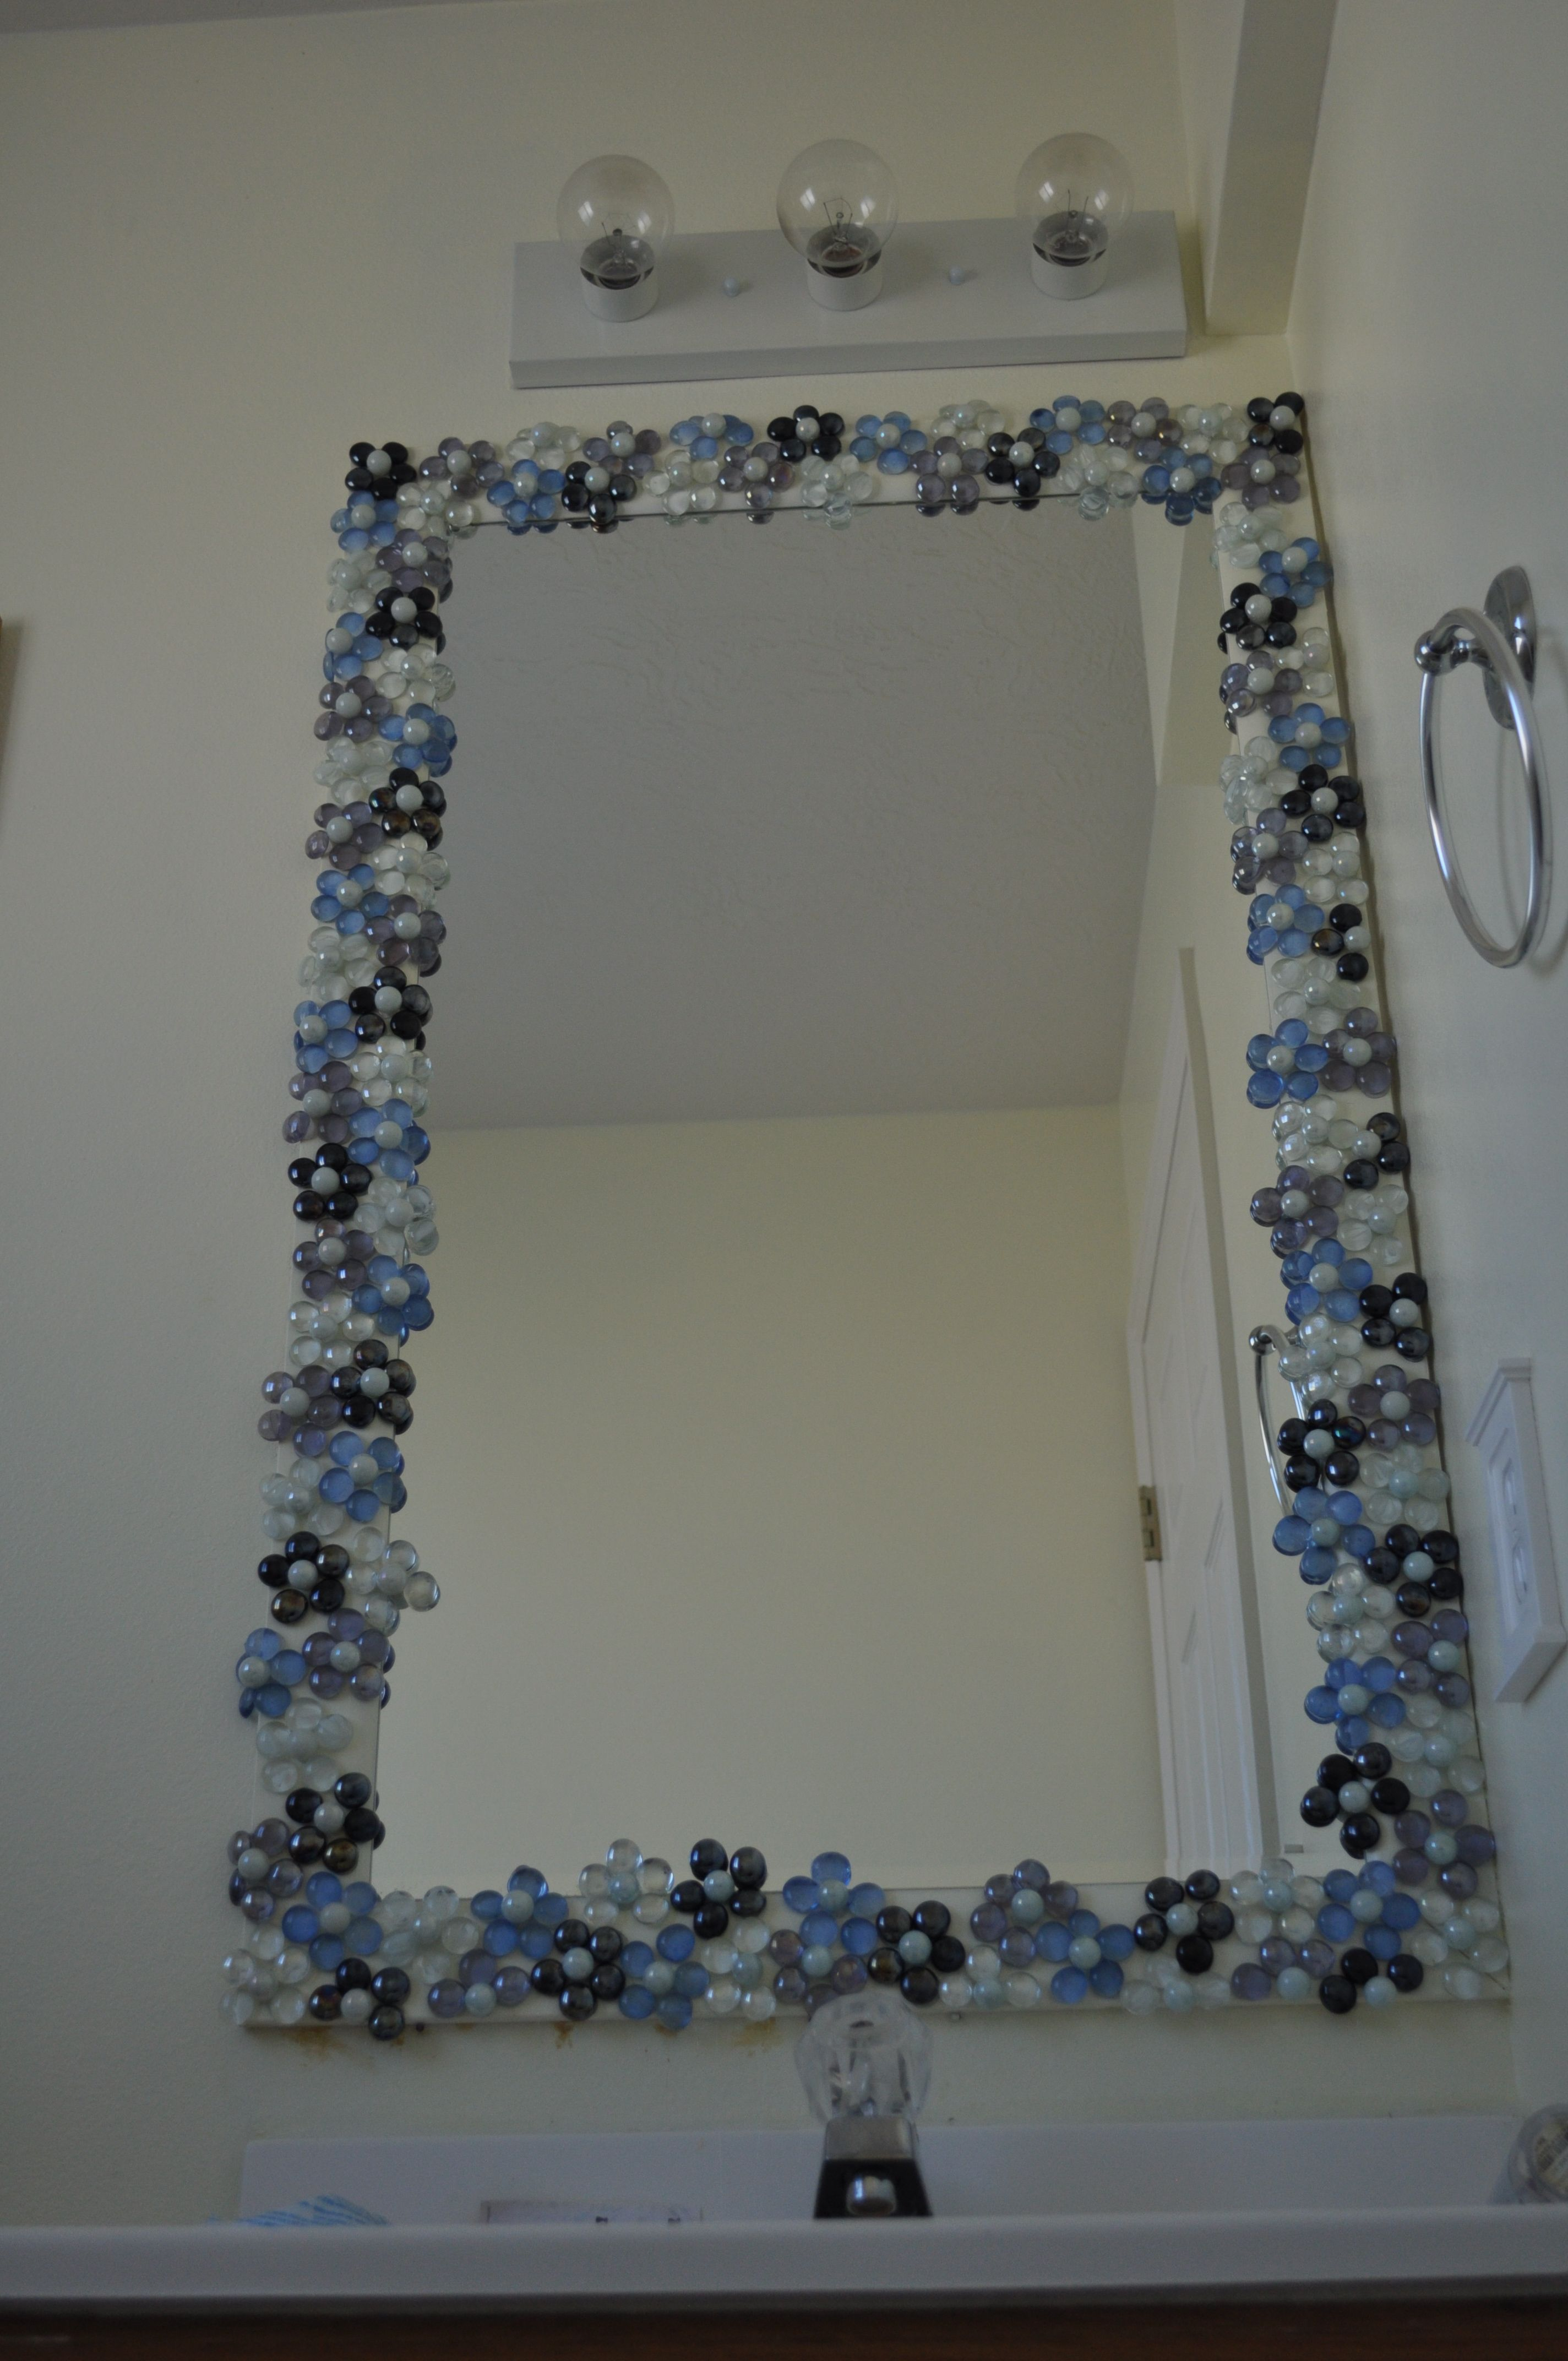 Glass Gems With Pearl Marble Centers To Dress Up A Bathroom Mirror Bathroom Decorating Tiled